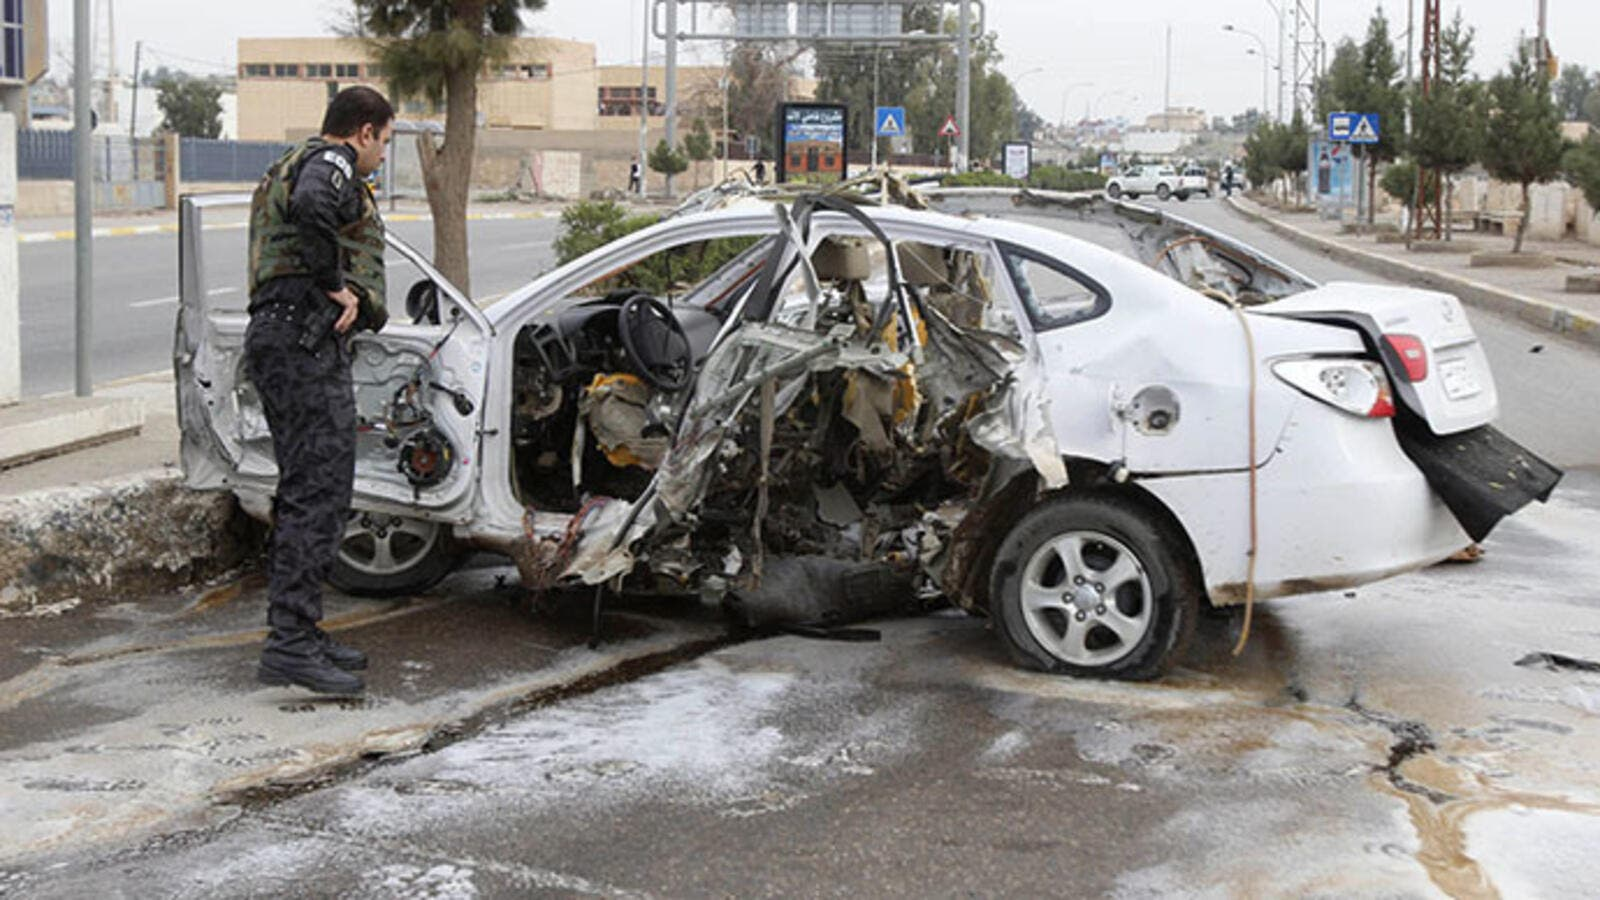 Security officials examine a car after a bomb in Kirkuk Wednesday (Reuters)